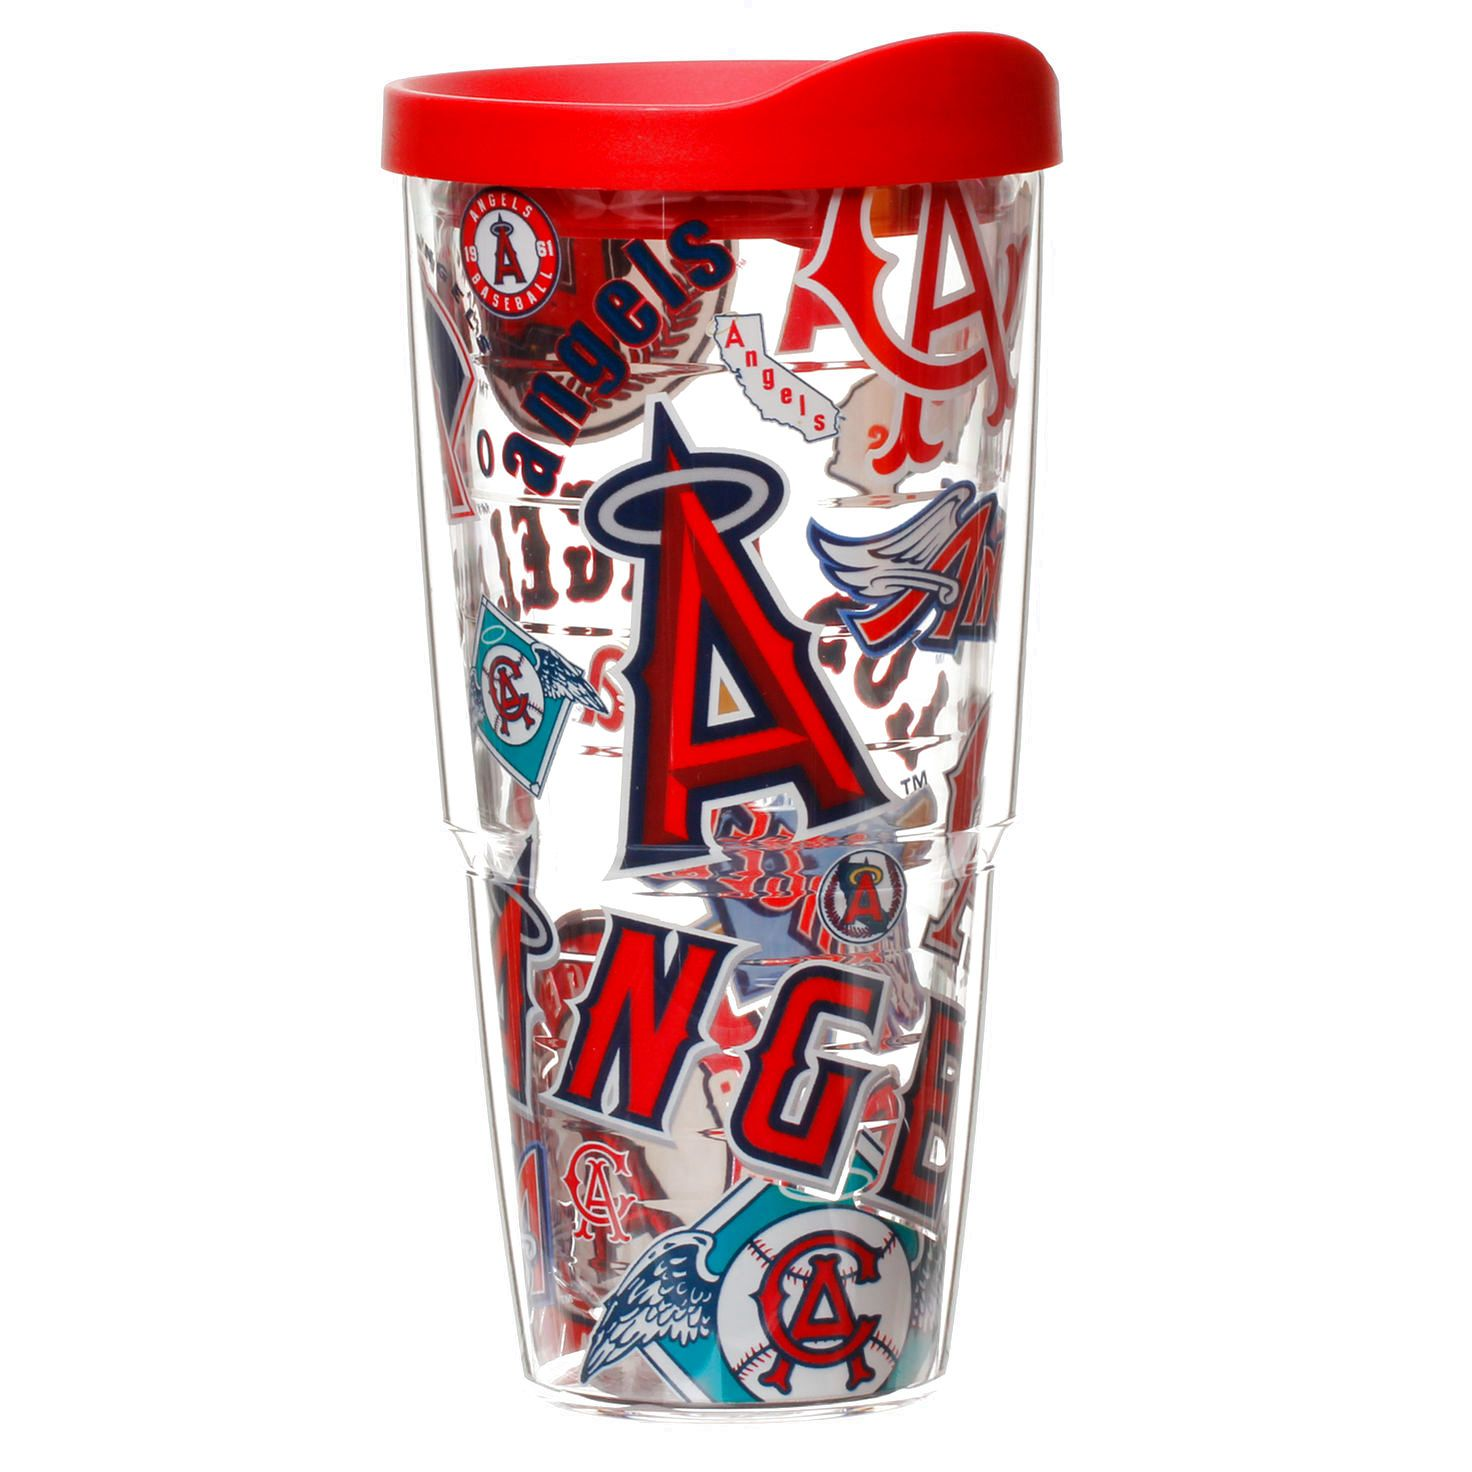 Los Angeles Angels of Anaheim Tervis 24oz. All Over Wrap Tumbler with Lid - $19.99